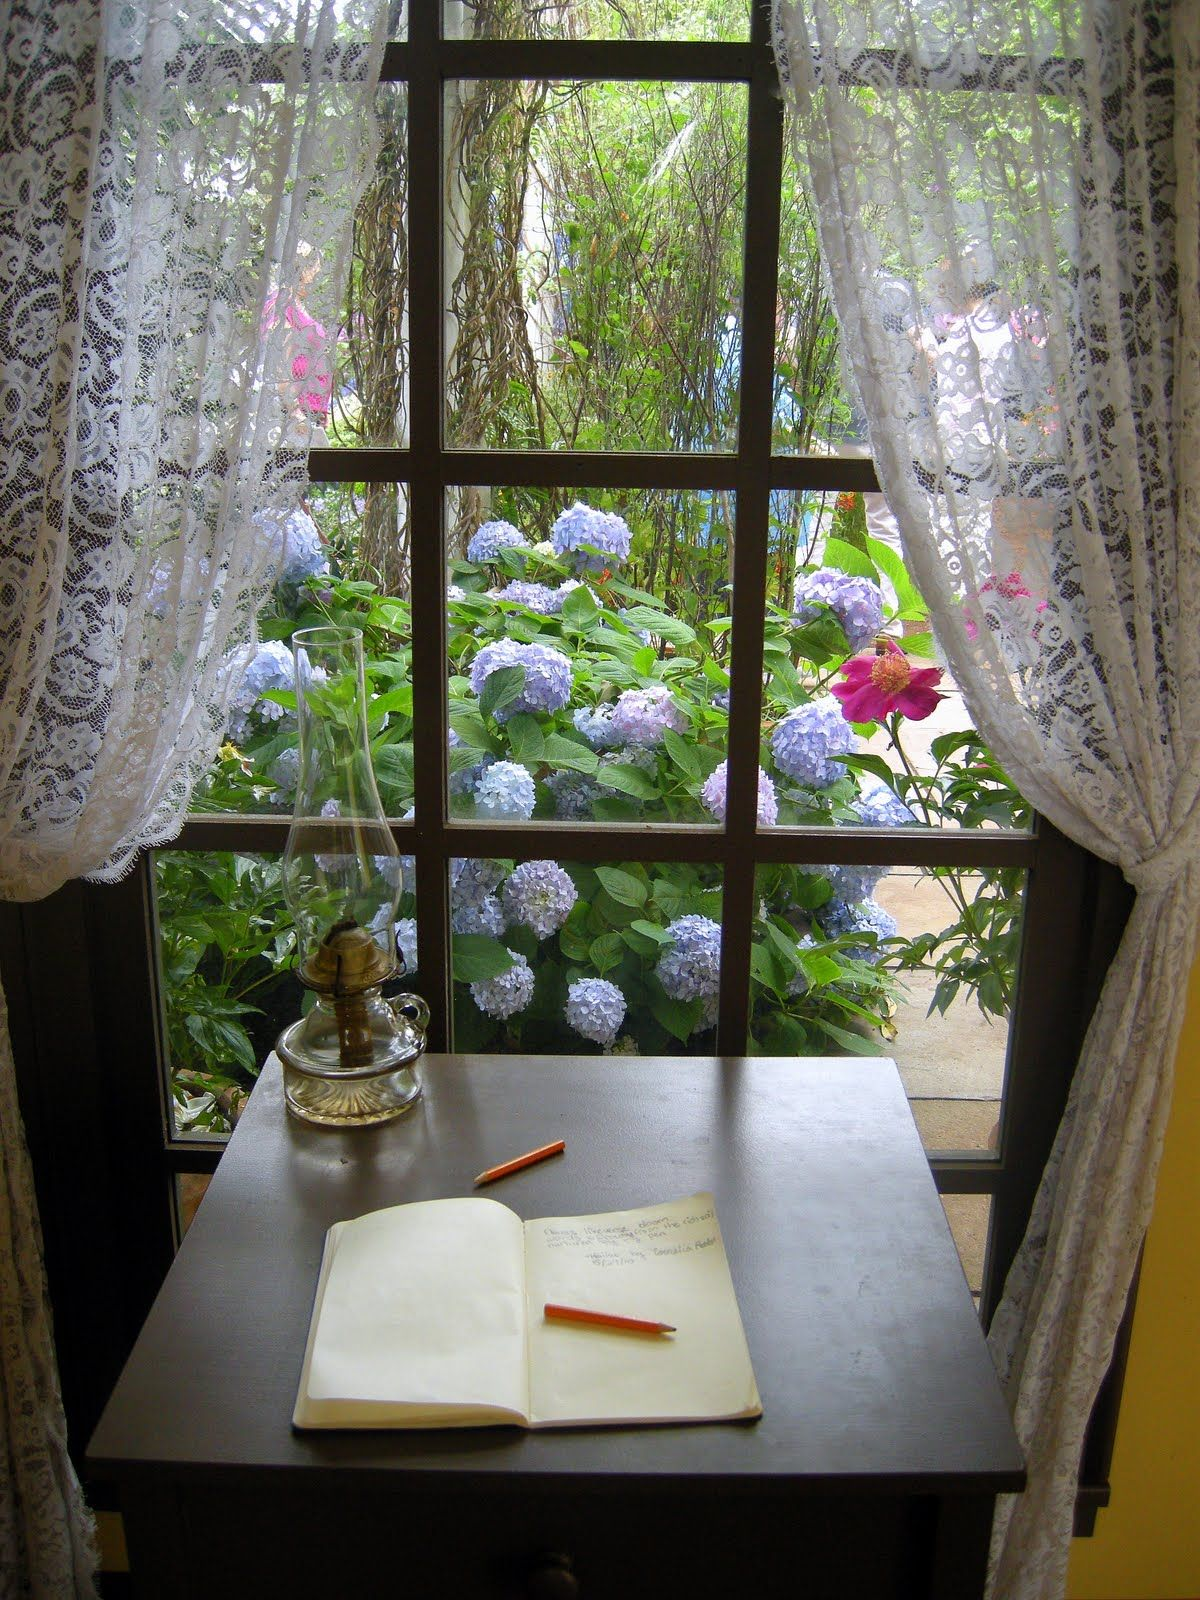 This is the view from the Homestead, the poet Emily Dickinson's home, recreated as part of an exhibit about her gardens at the New York Botanical Garden in the Bronx. It's a lovely exhibit, interspersing her poetry, much of which was inspired by nature, with flowers and plants.